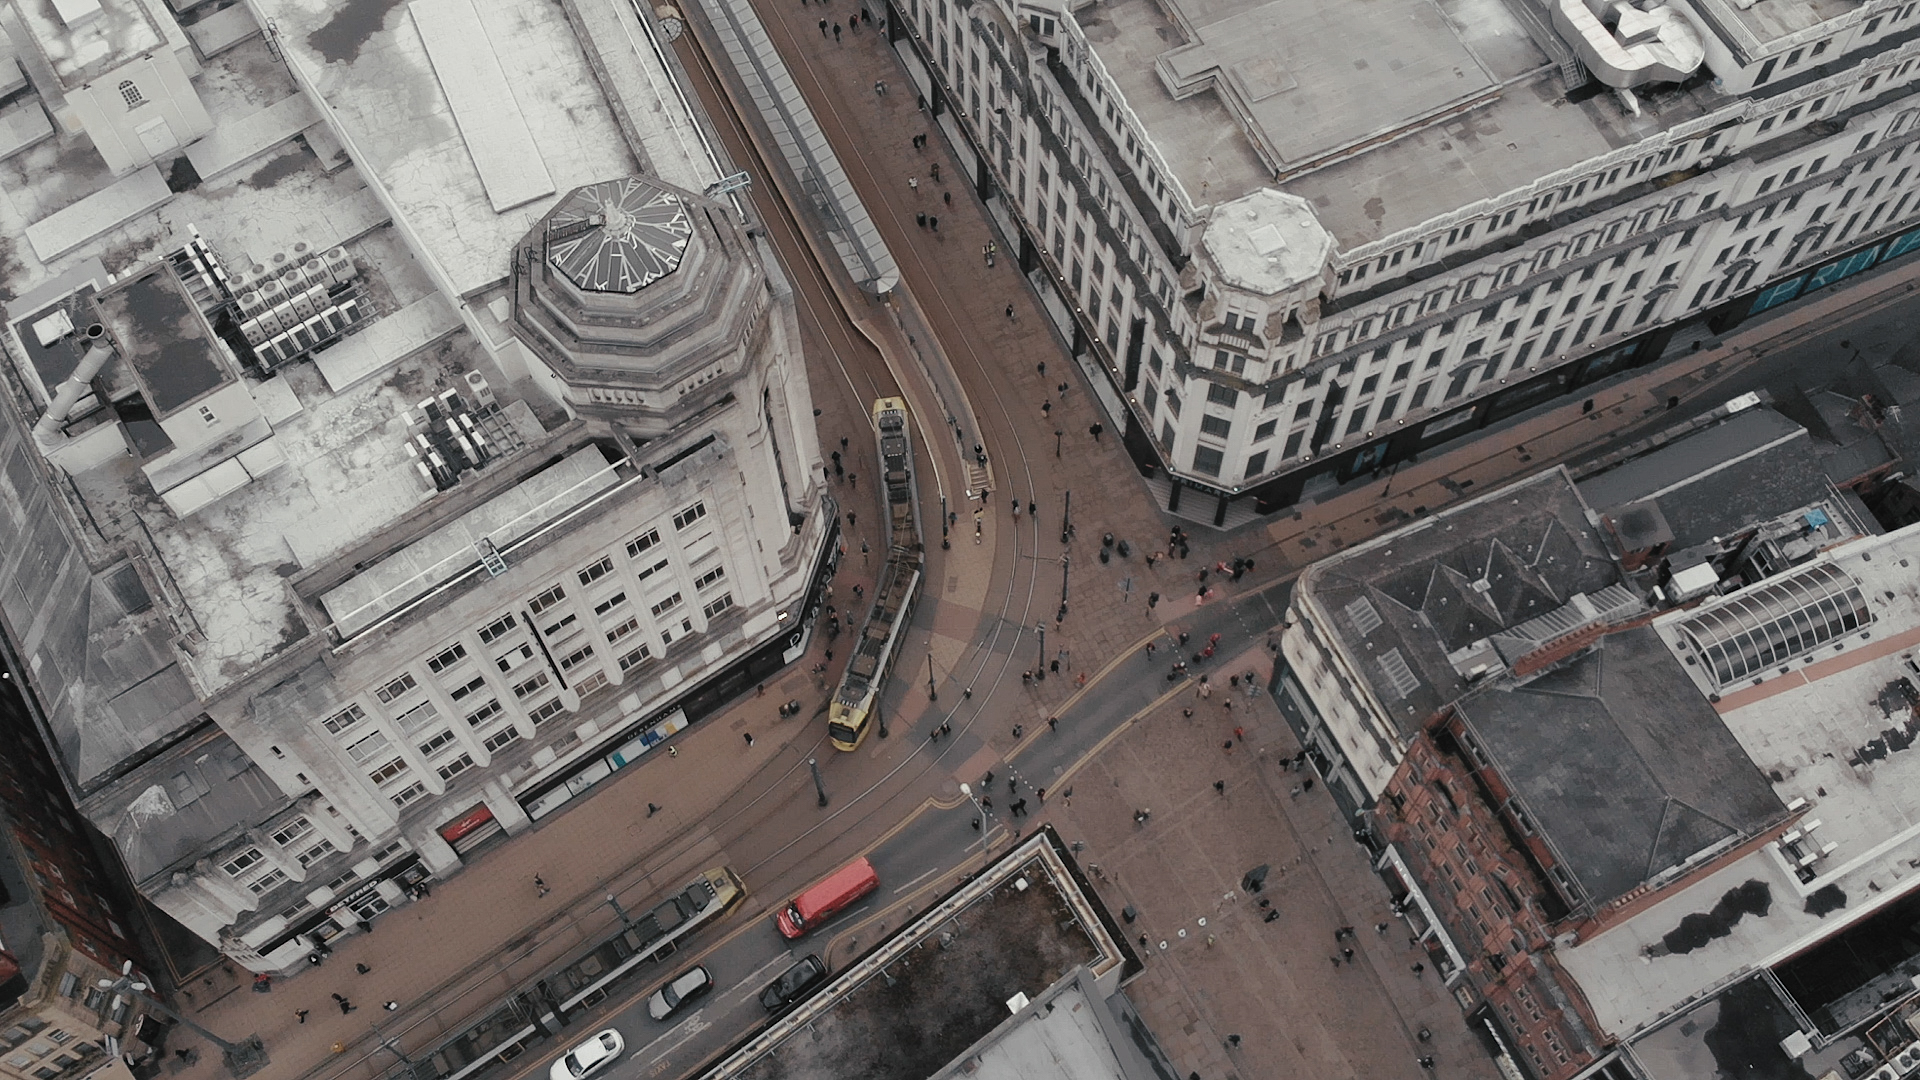 An aerial view of Manchester, during the spice epidemic